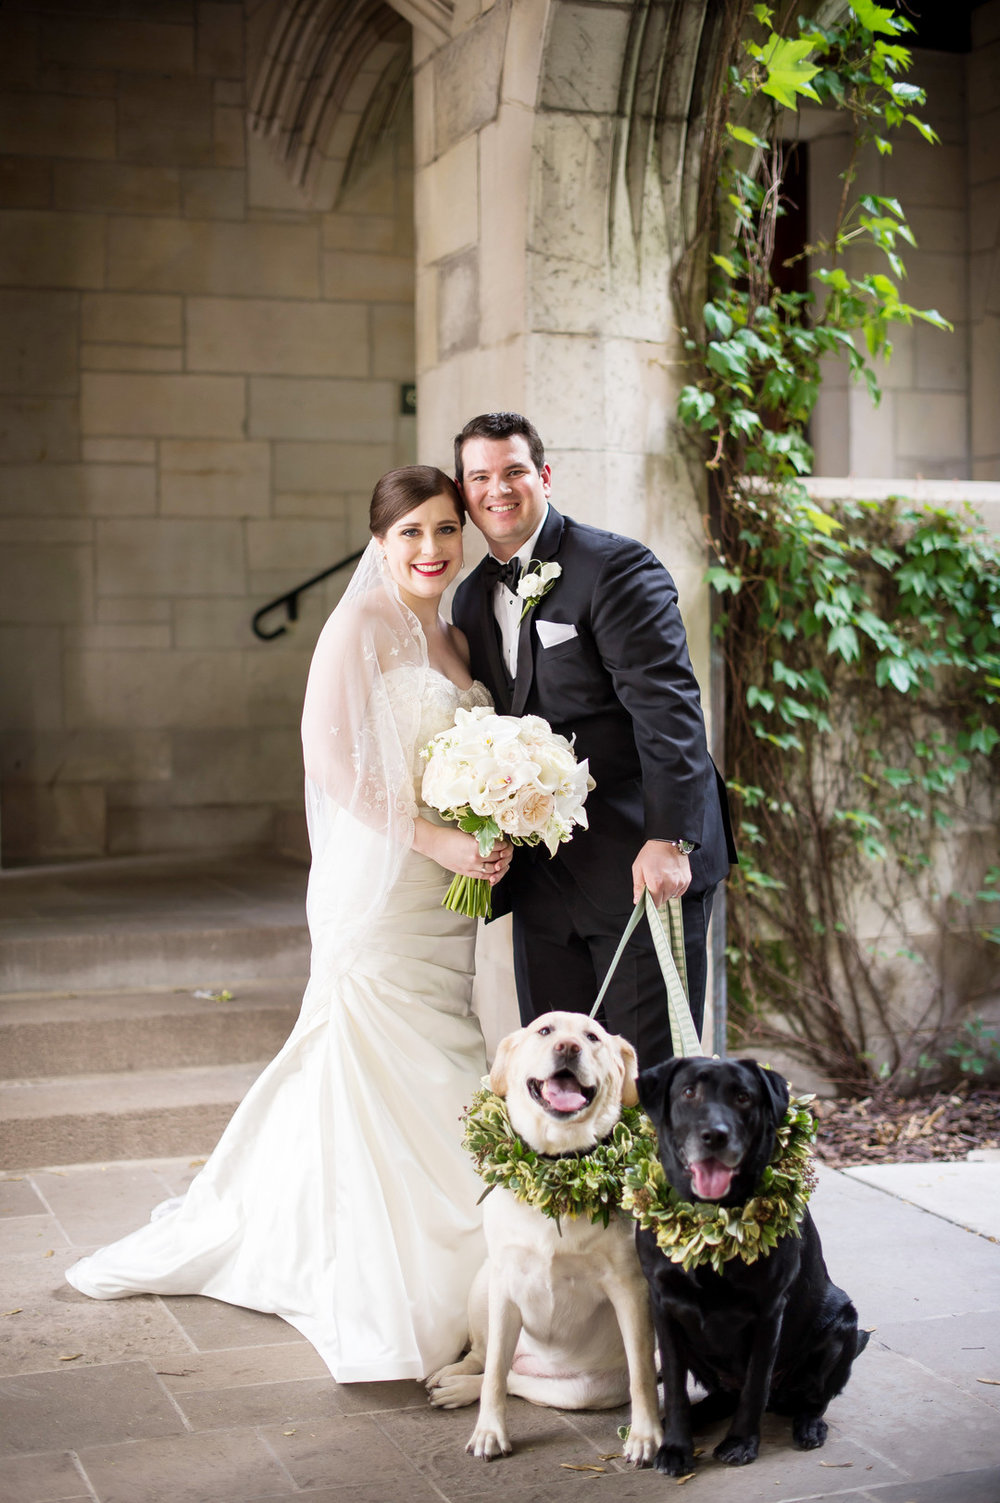 Bride, Groom and Pups Chicago Wedding Julia Franzosa Photography